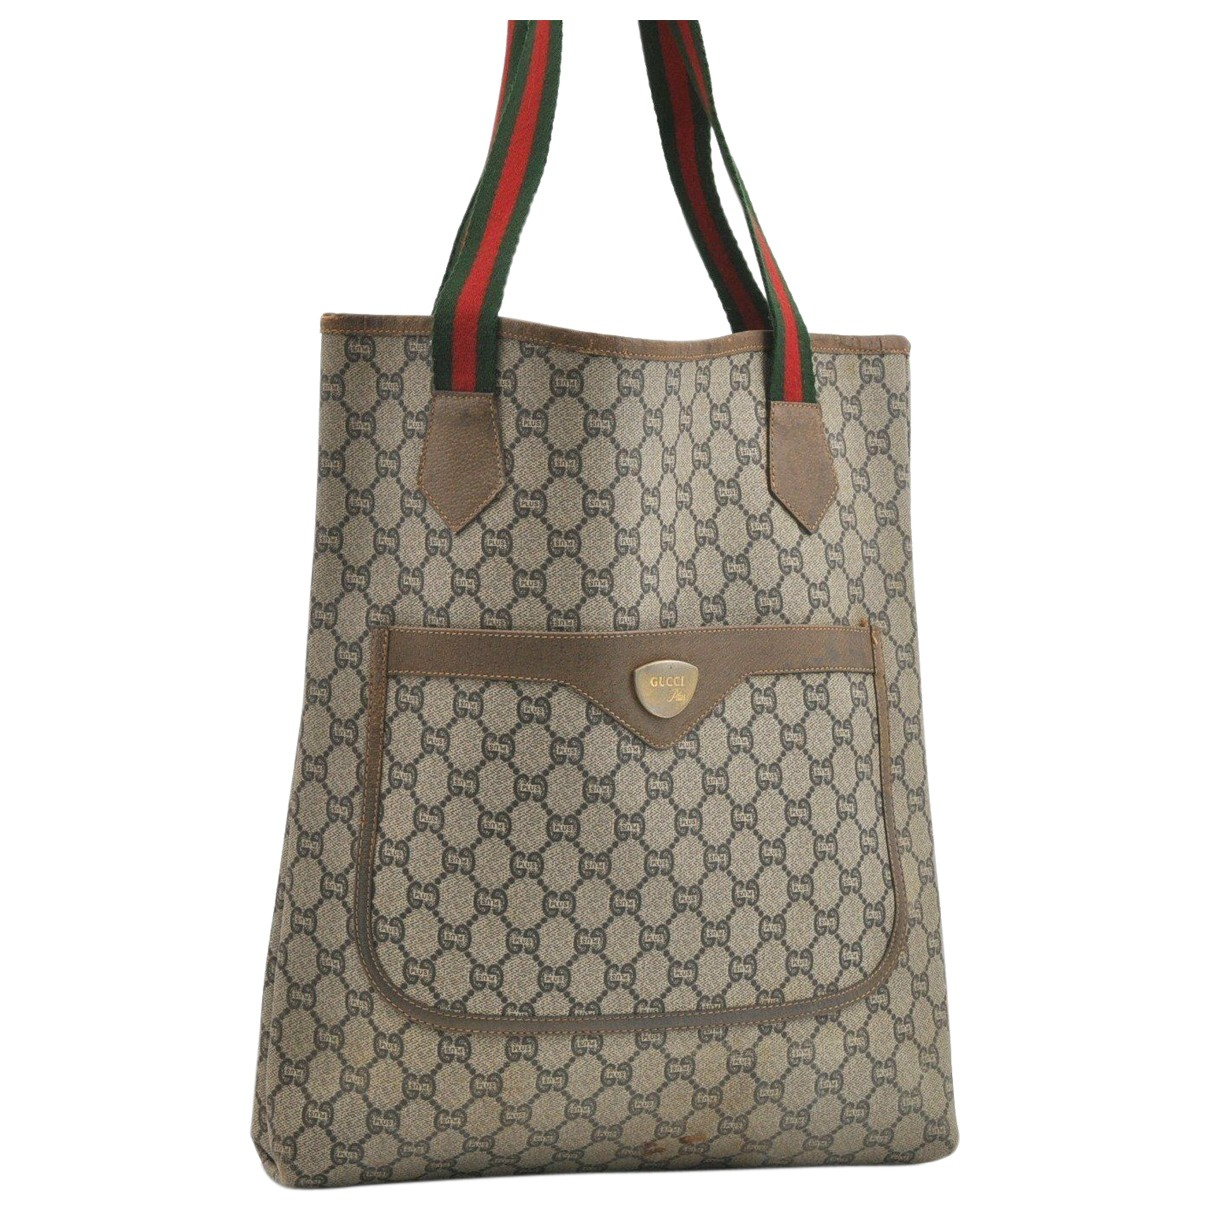 Gucci N Brown handbag for Women N